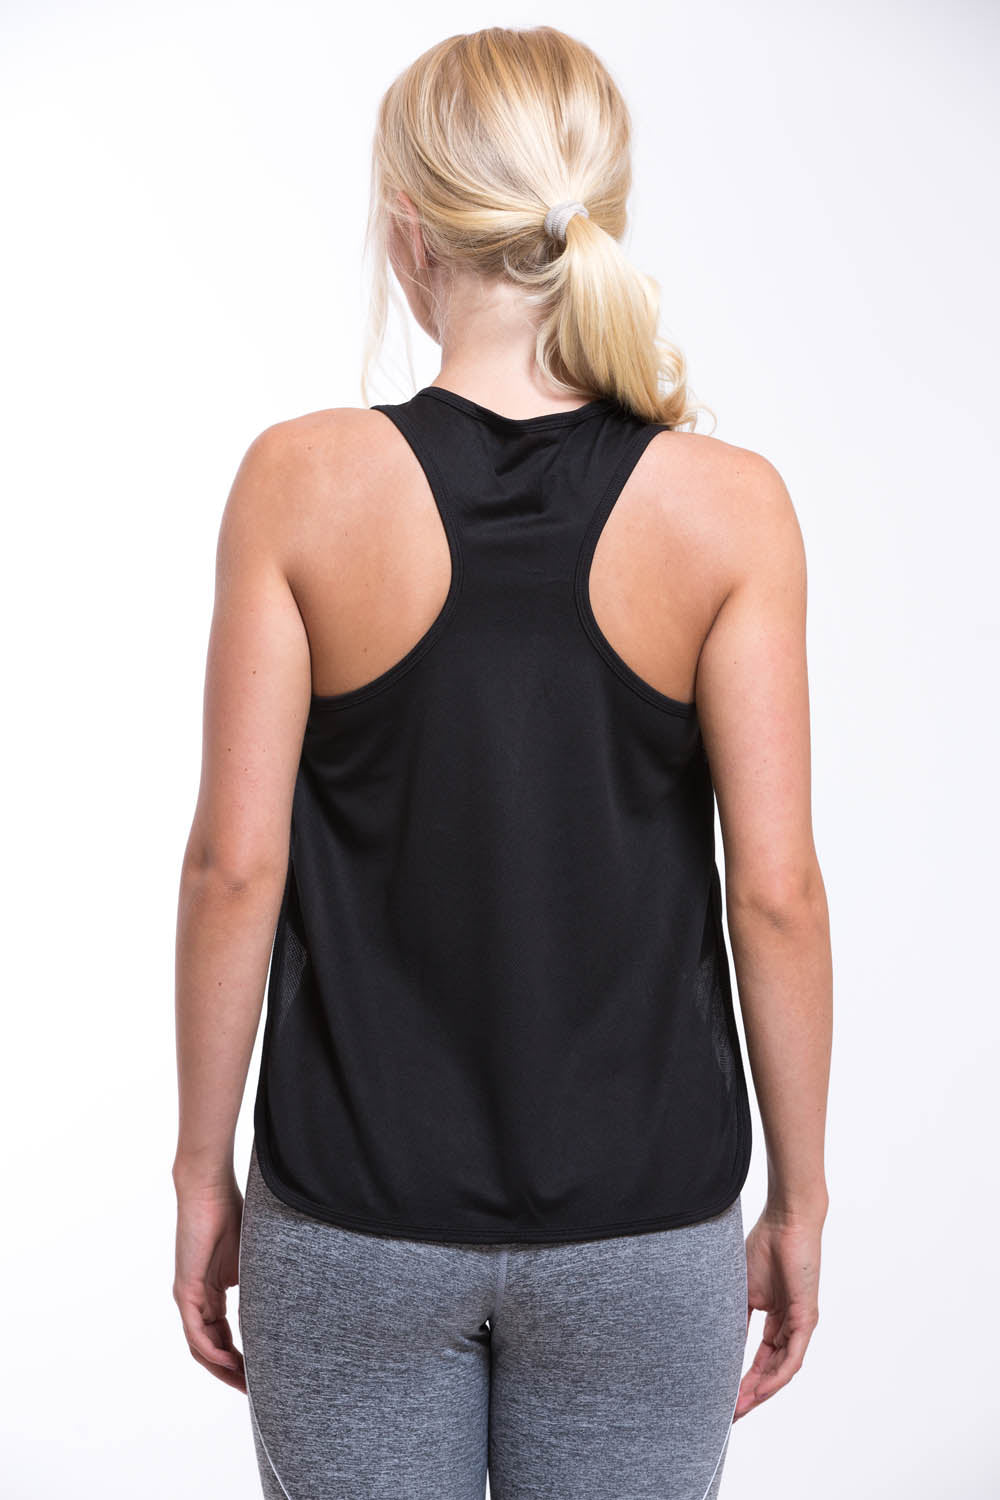 TURO Split Vest Top Black